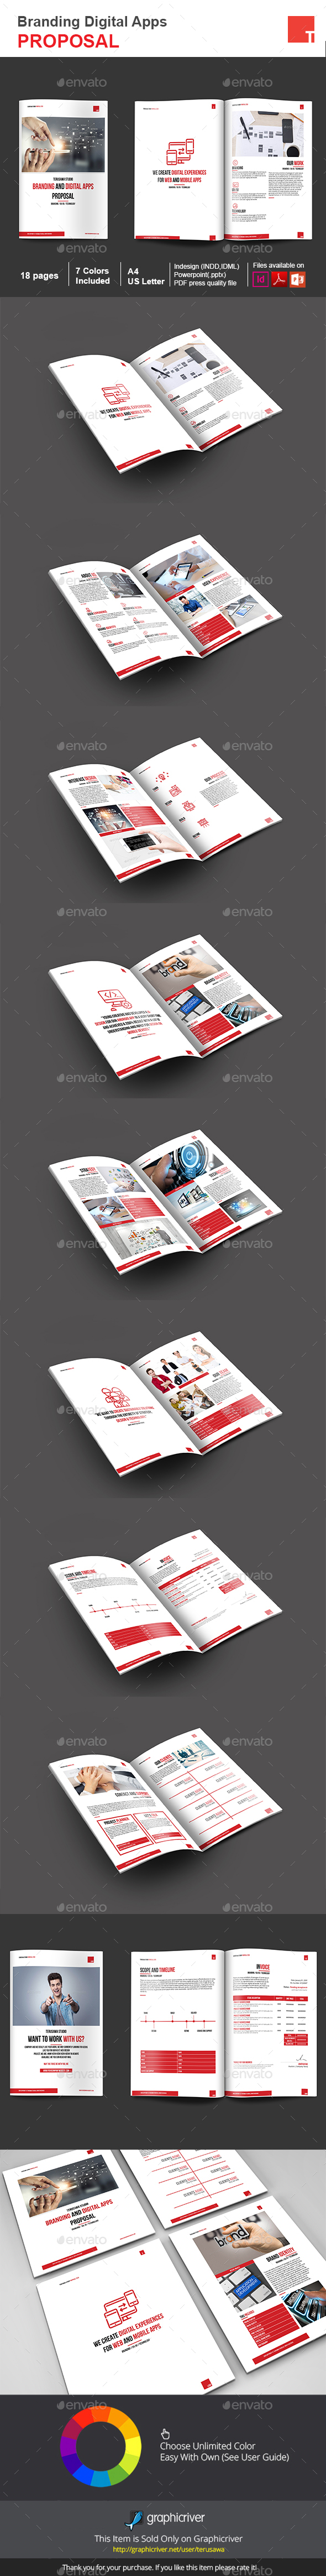 Branding Digital Apps Proposal - Proposals & Invoices Stationery